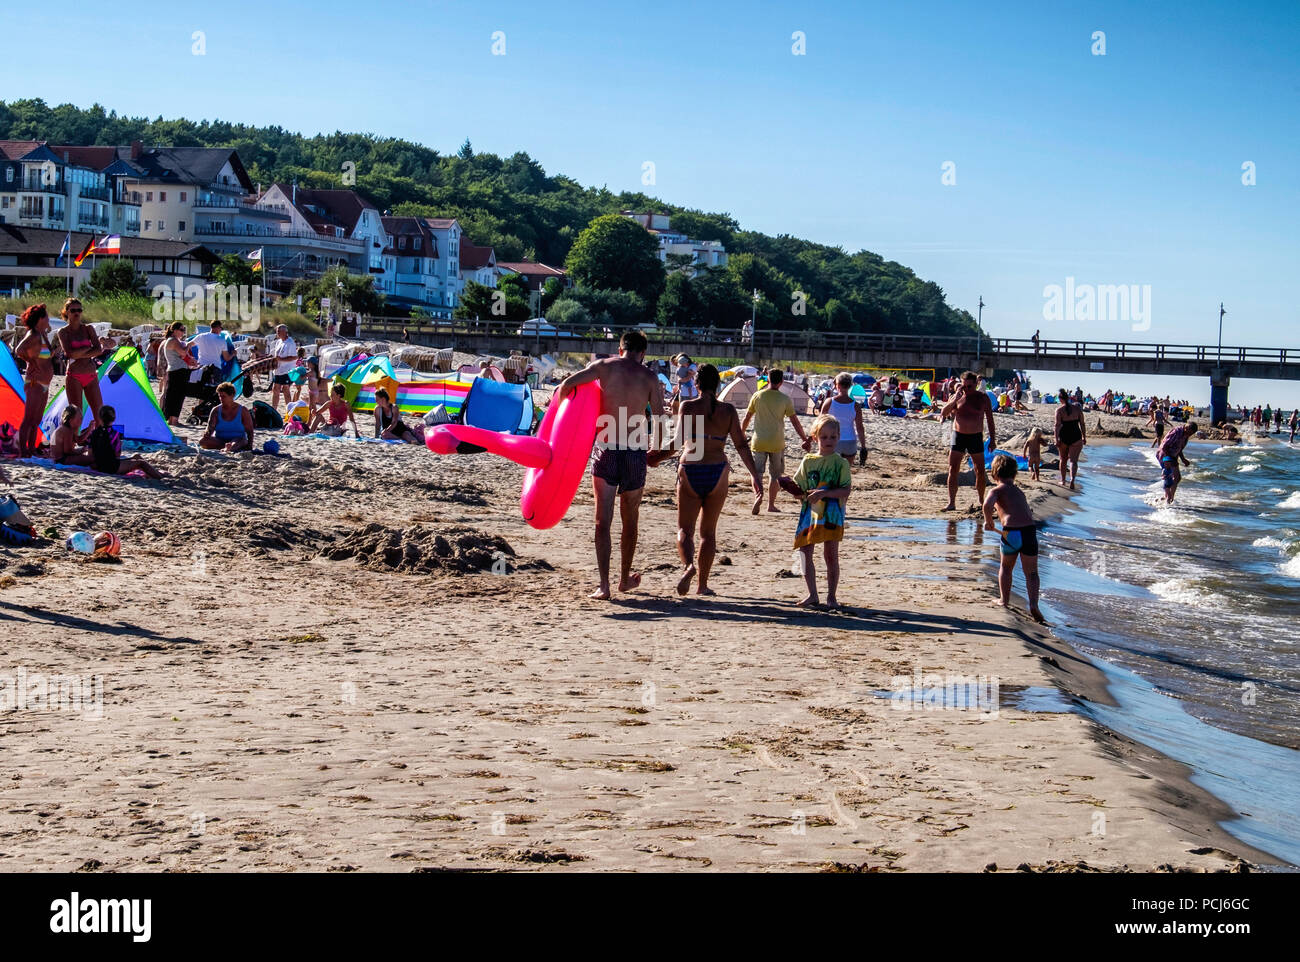 Crowded Bansin beach as people holiday at the Baltic sea resort on Usedom Island during 2018 Summer heat wave, Heringsdorf, Germany Bansin beach is th Stock Photo